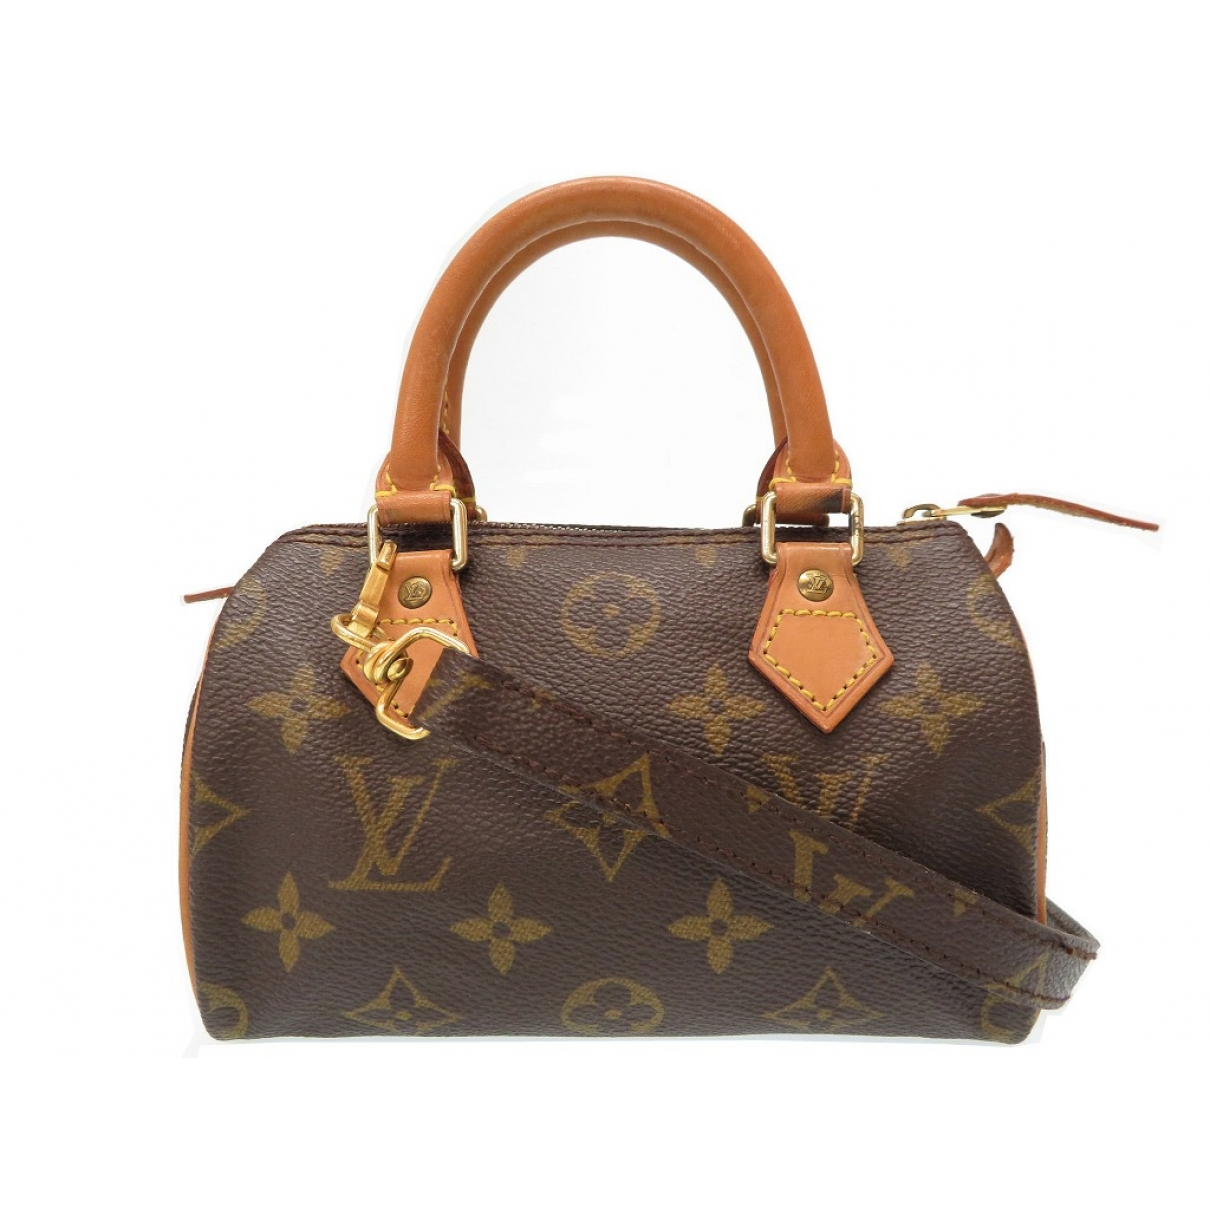 Louis Vuitton Speedy Bandoulière Brown Cloth handbag for Women \N